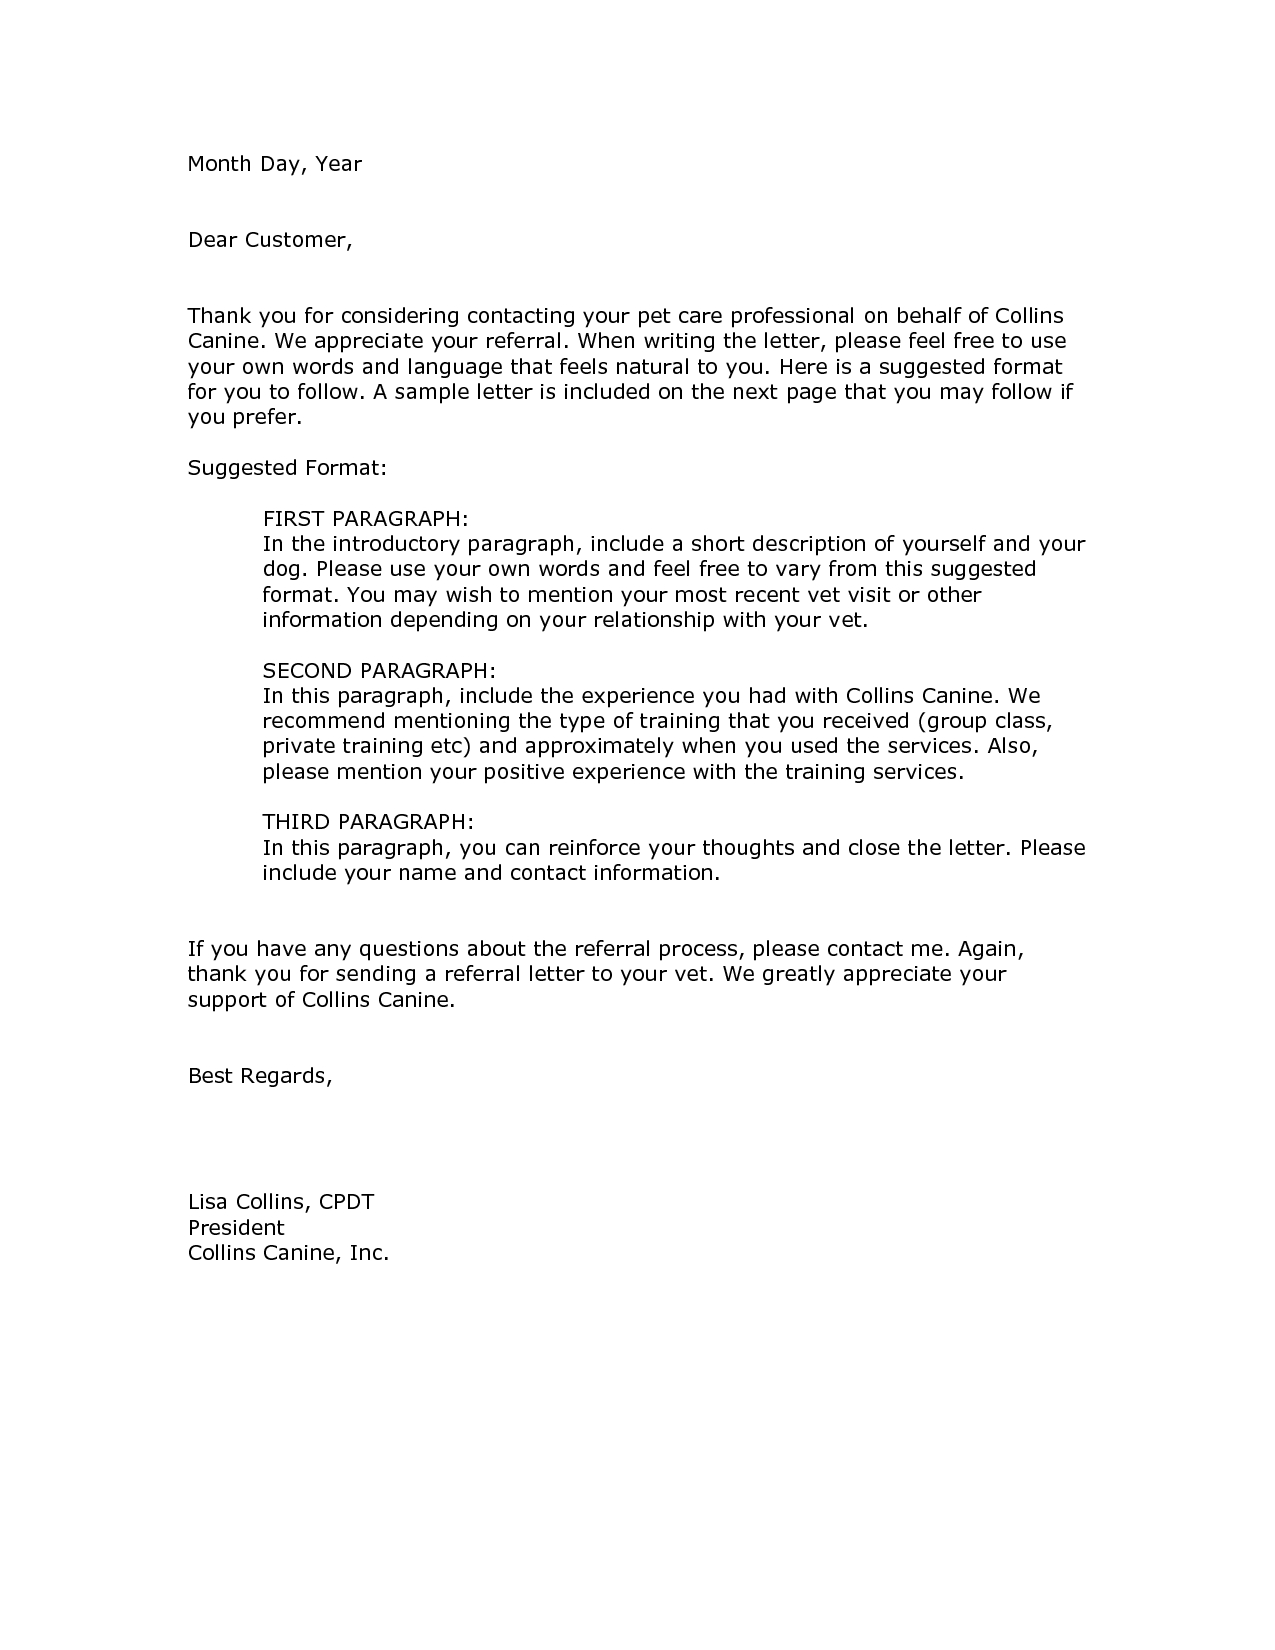 Insurance Referral Letter Template - Client Referral Thank You Letter Gallery Letter format formal Sample